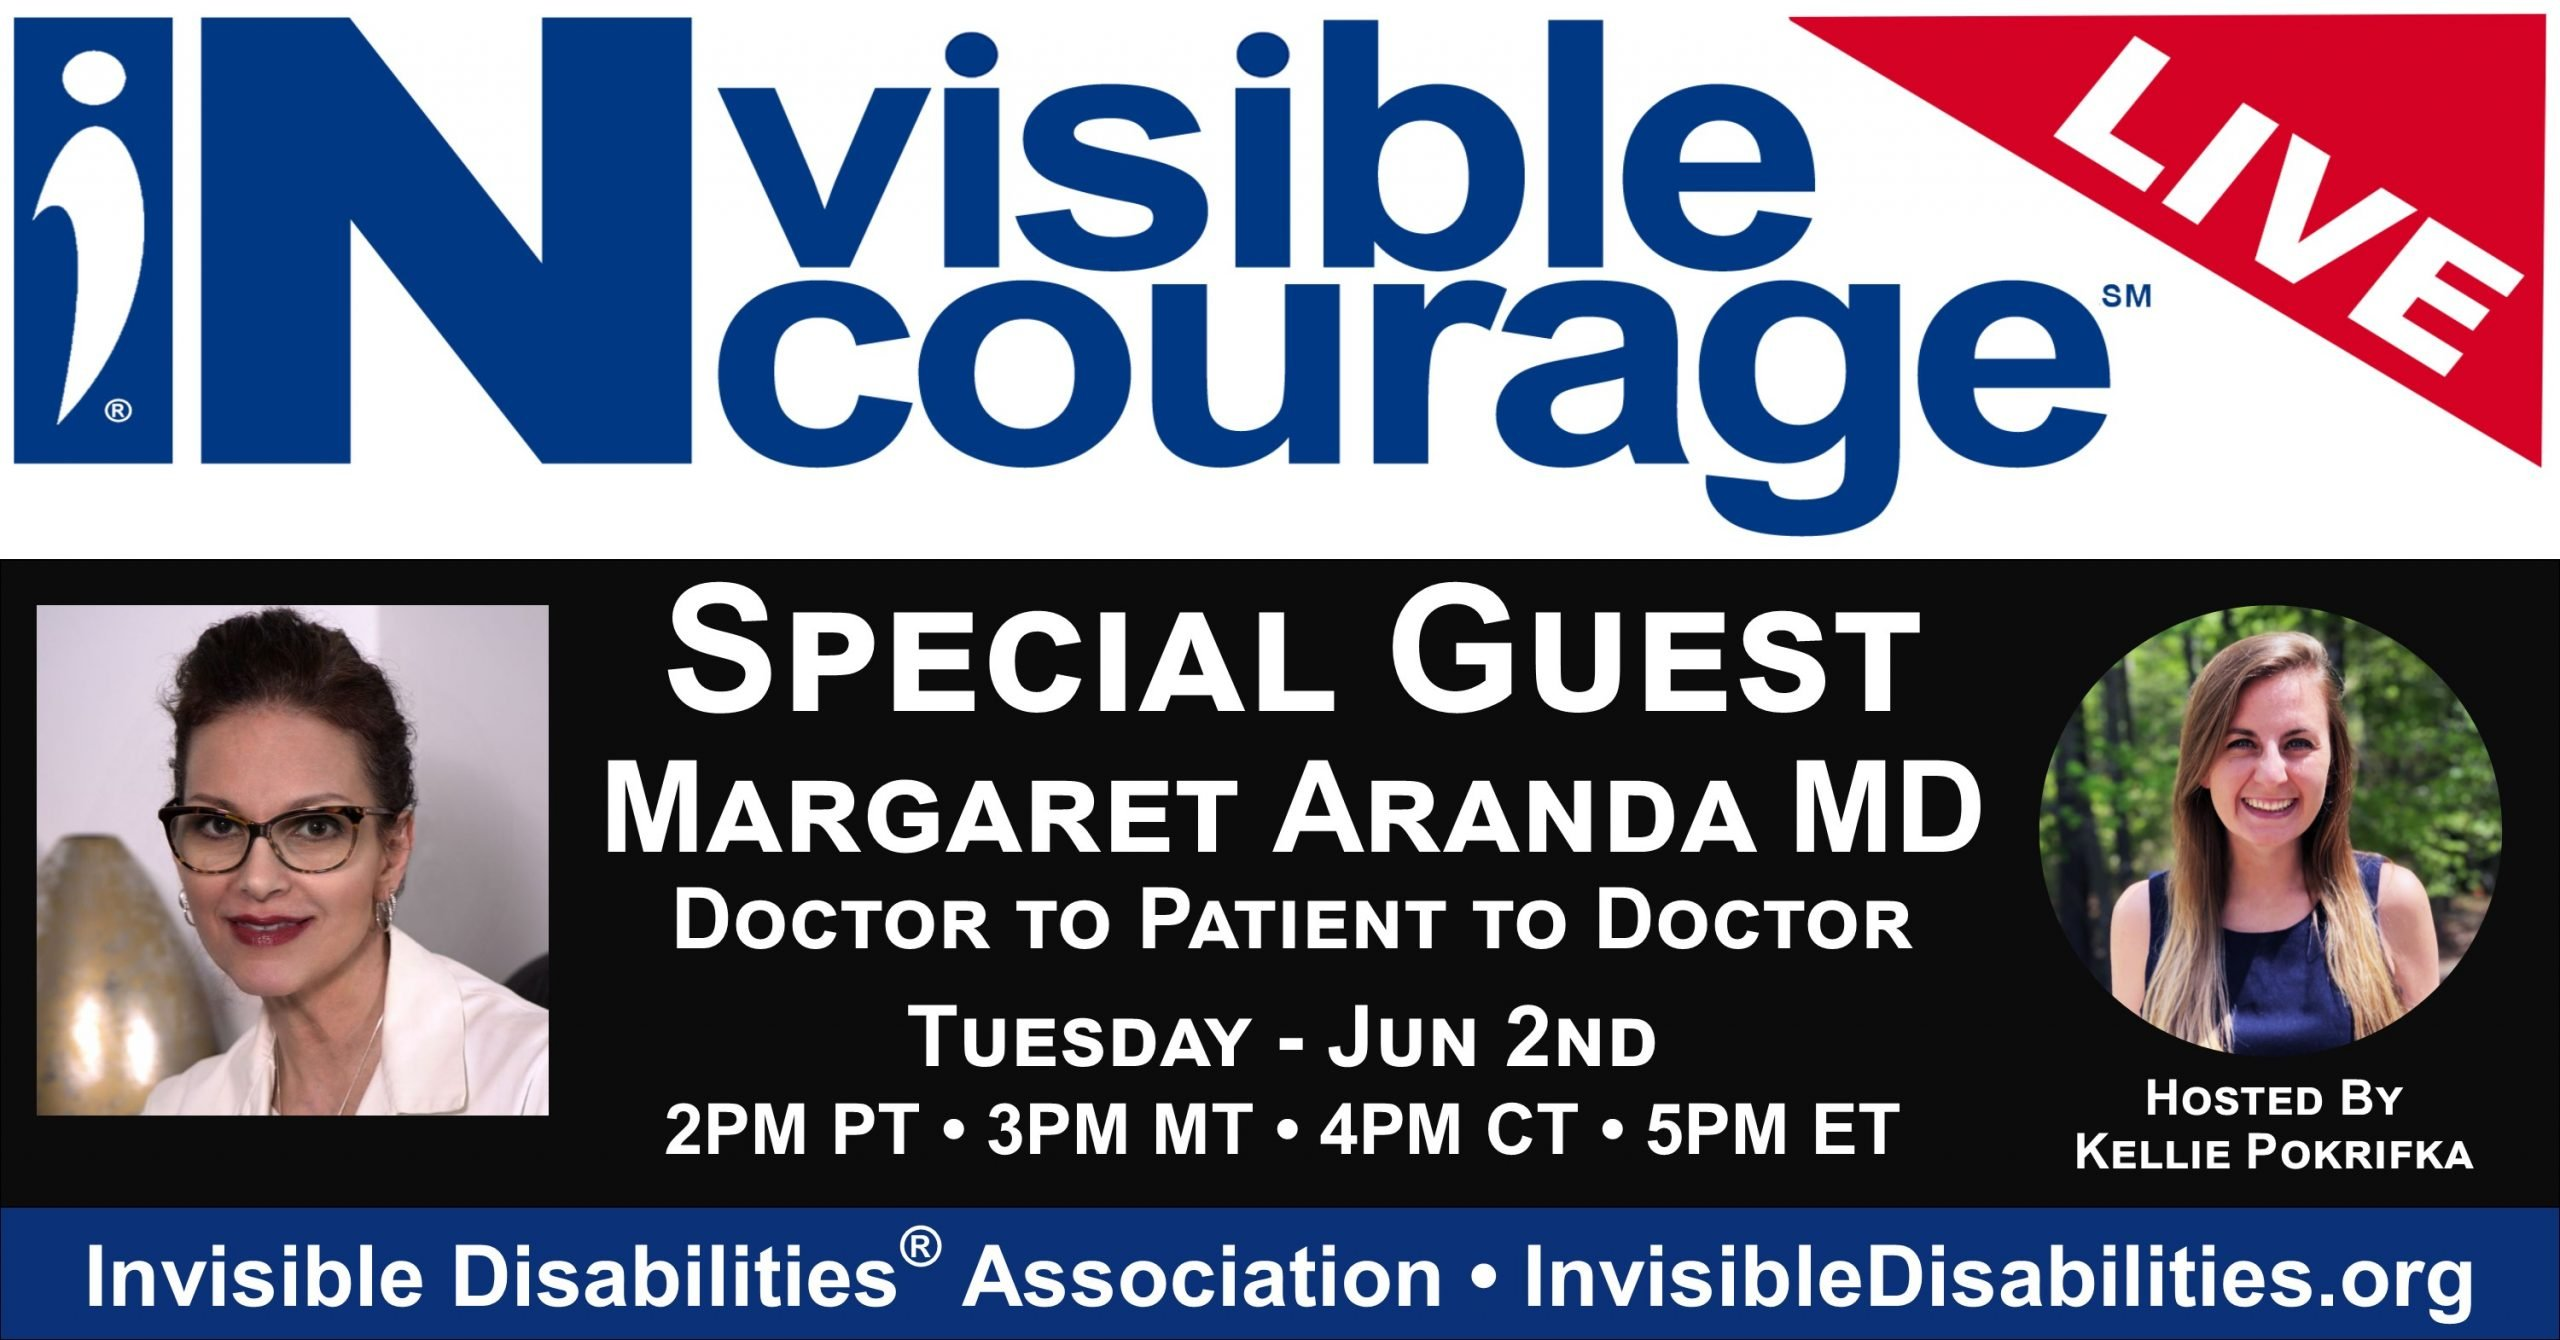 InVisible InCourage Live with Margaret Aranda MD PhD - Doctor turned Patient turned Doctor - Invisible Disabilities Association